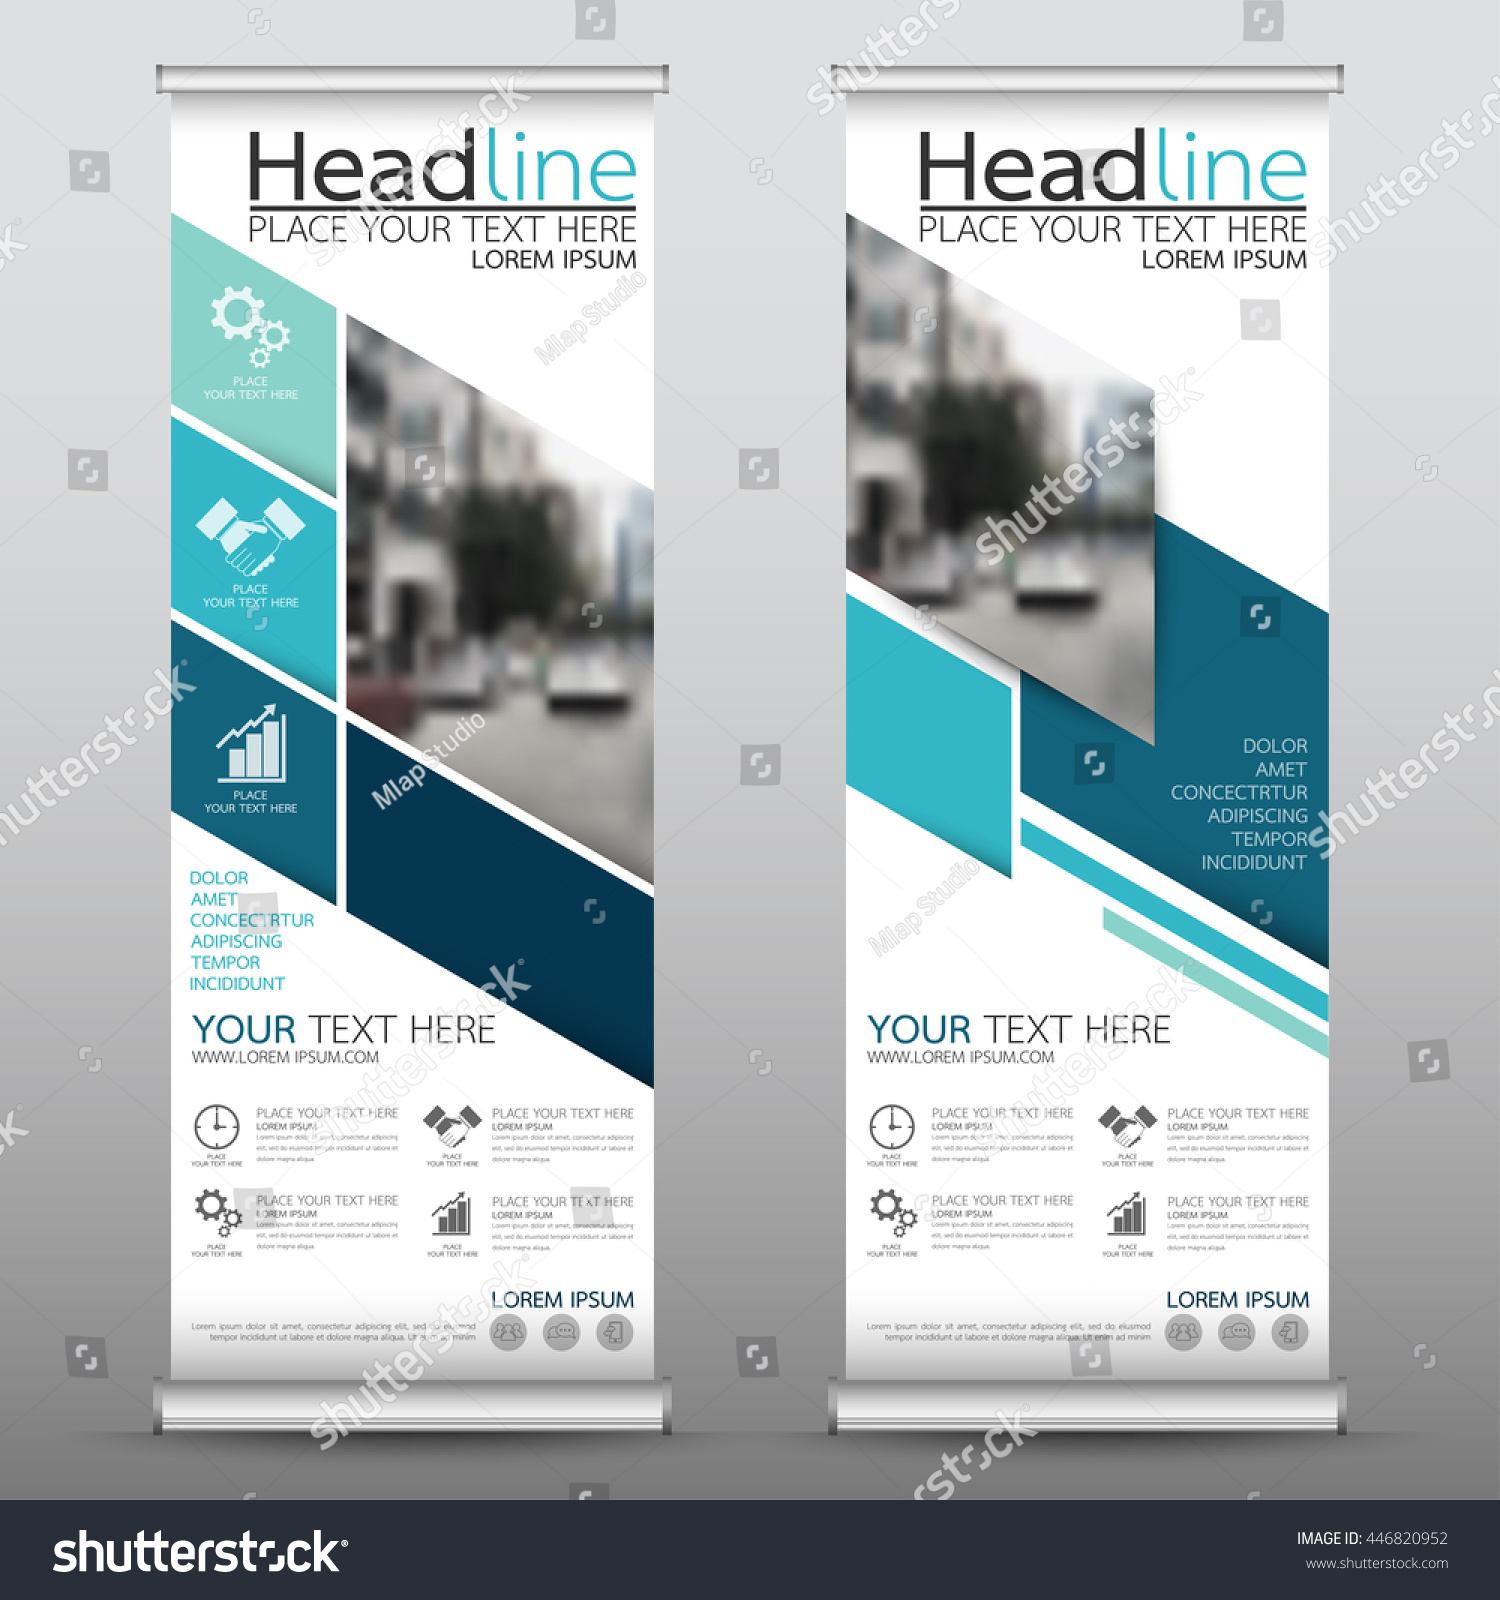 Green roll up business brochure flyer banner design vertical template - Blue Roll Up Business Brochure Flyer Banner Design Vertical Template Vector Cover Presentation Abstract Geometric